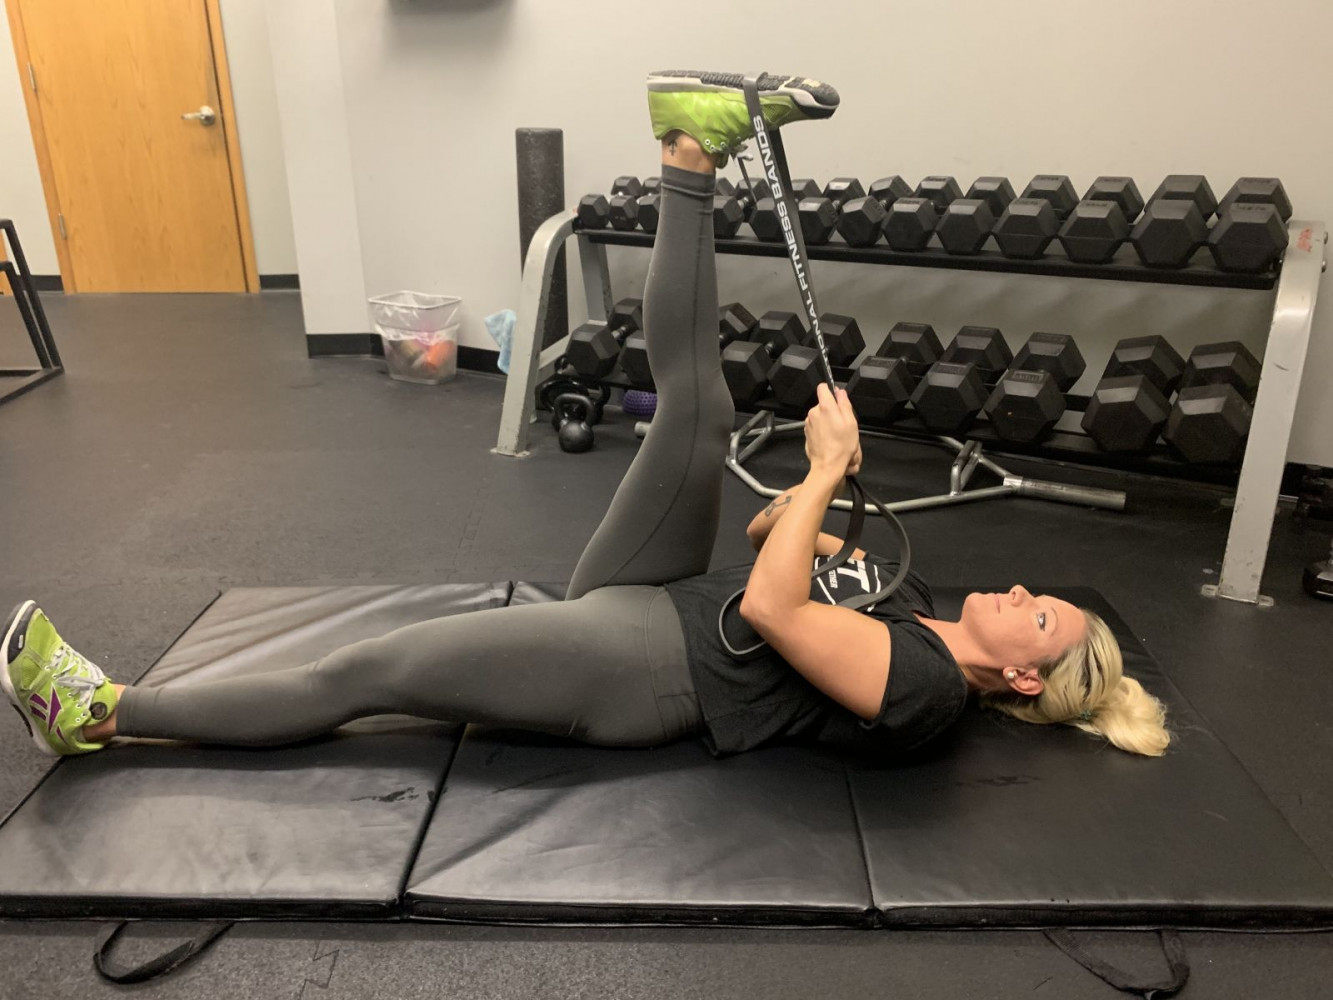 Trainer Corner: Two Stretches to do at the End of A Workout